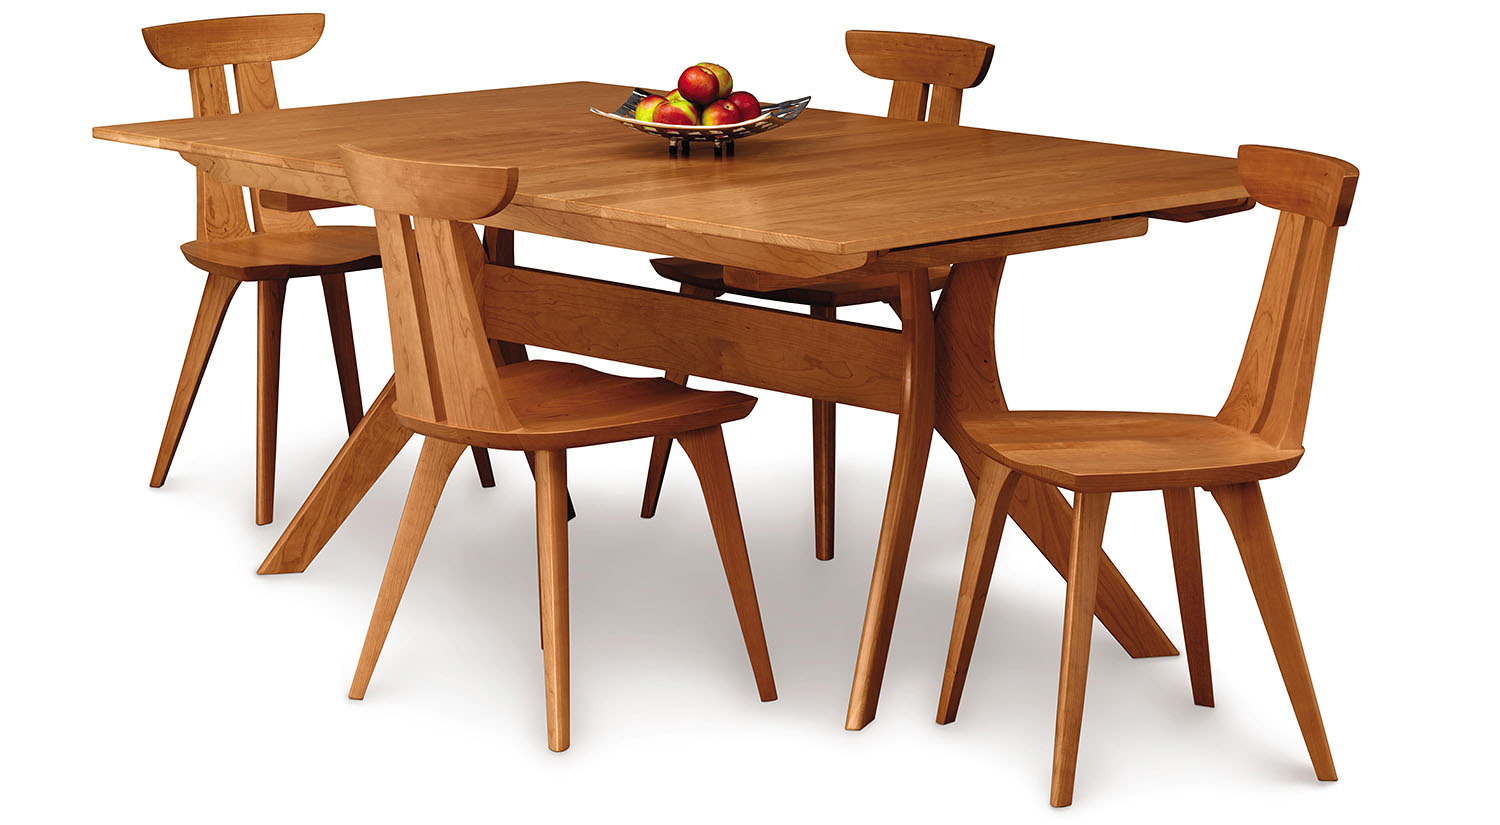 Circle Furniture Audrey Extension Table Dining Tables Copeland Circle Furniture